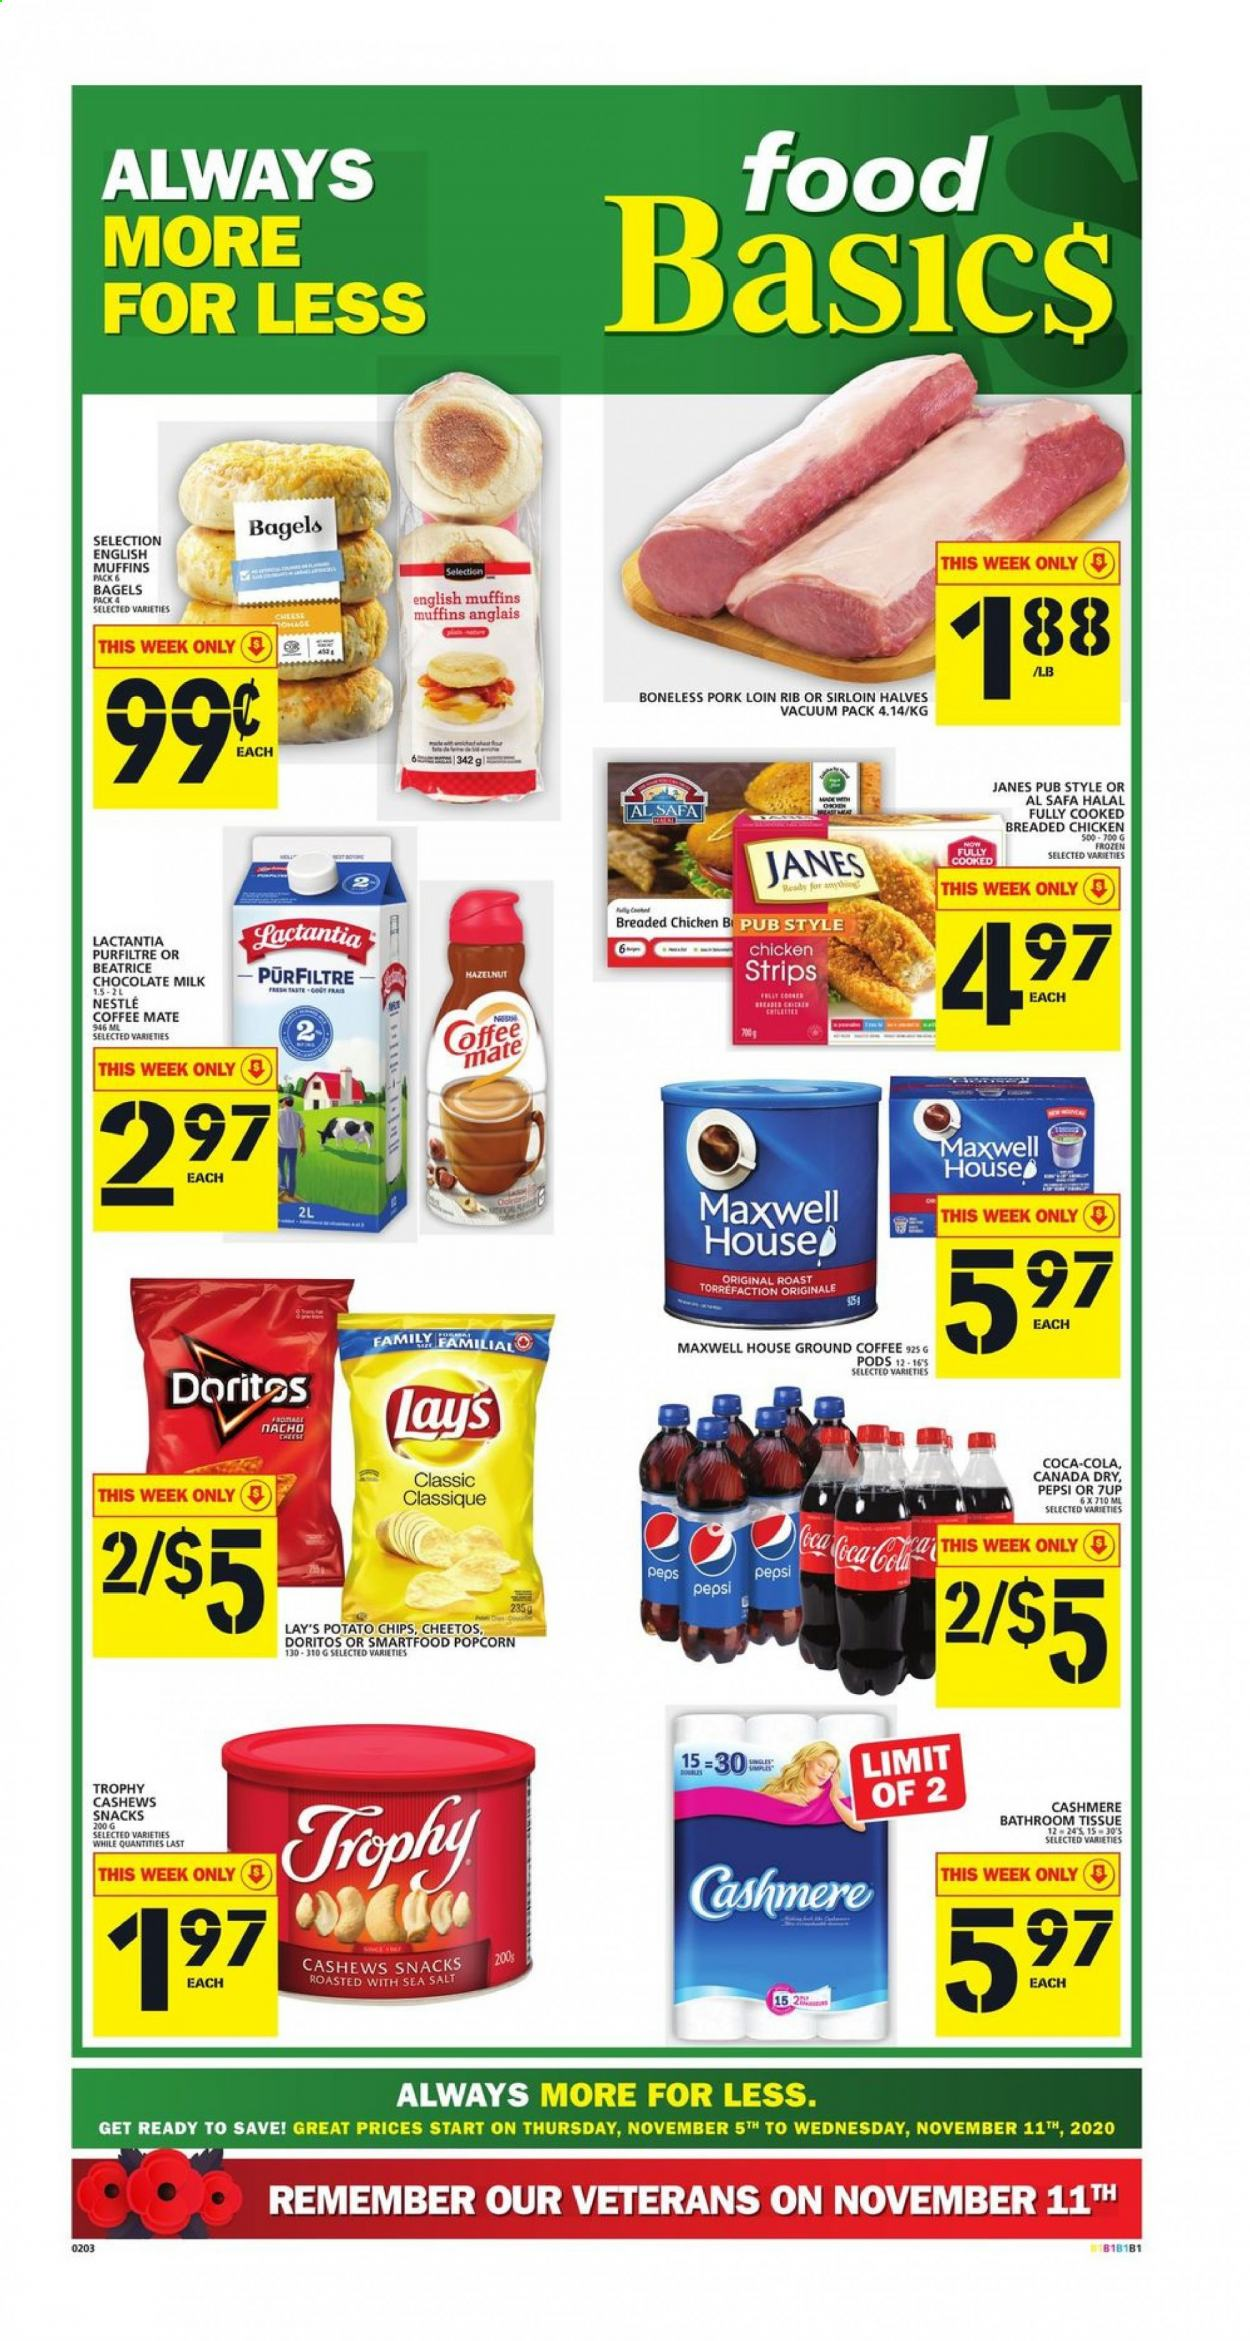 Food Basics Flyer - November 05, 2020 - November 11, 2020 - Sales products - always, bagels, canada dry, cashews, coca-cola, coffee, doritos, english muffins, frozen, mate, maxwell house, milk, muffins, nestlé, vacuum, popcorn, pork loin, pork meat, potato chips, cheetos, chicken, pepsi, chocolate milk, chips, chocolate, cheese, snack, salt, lay's, snacks, sea salt, roast, ground coffee. Page 1.